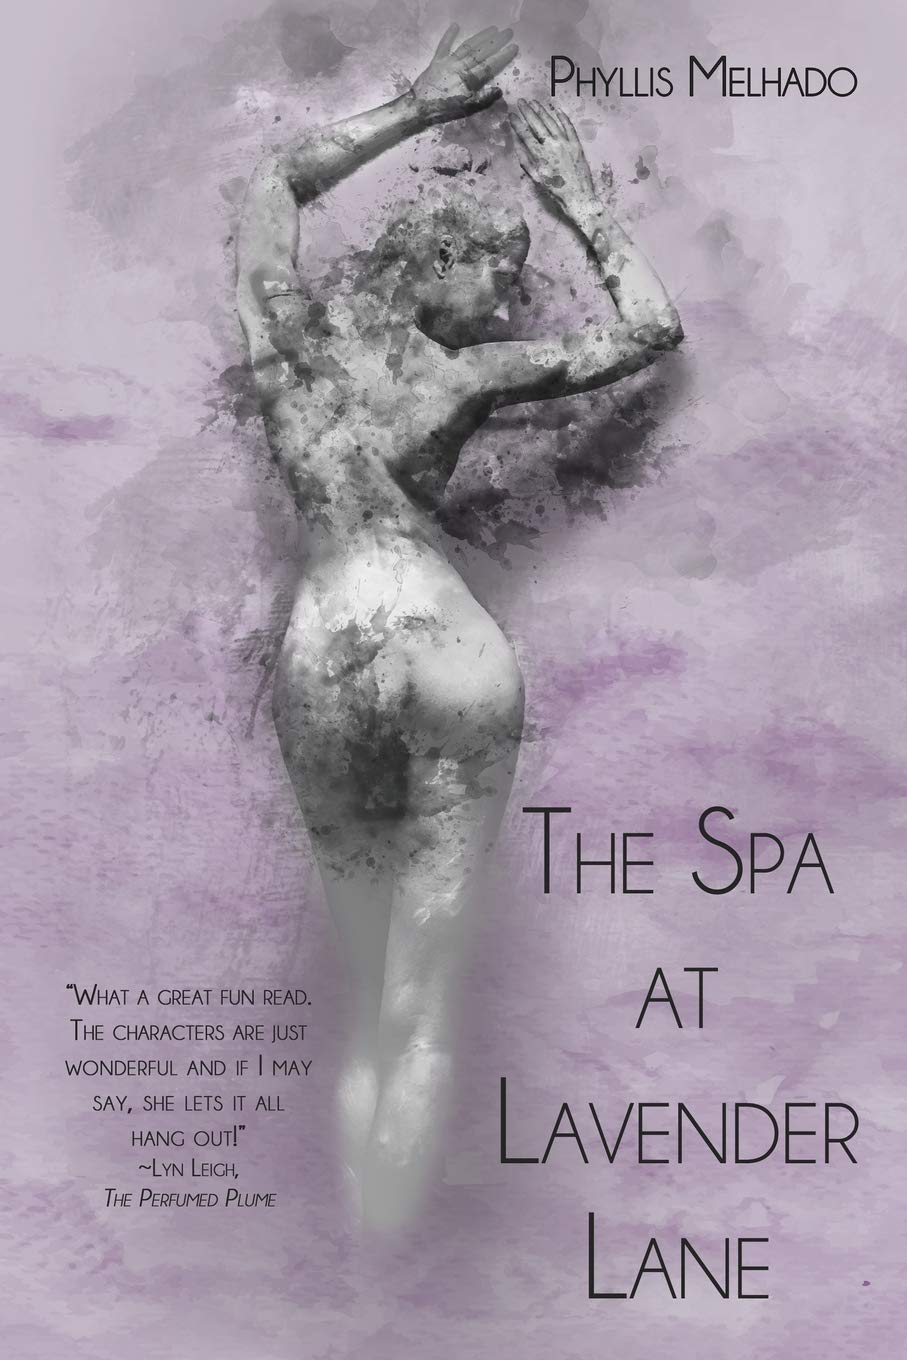 The Spa at Lavender Lane